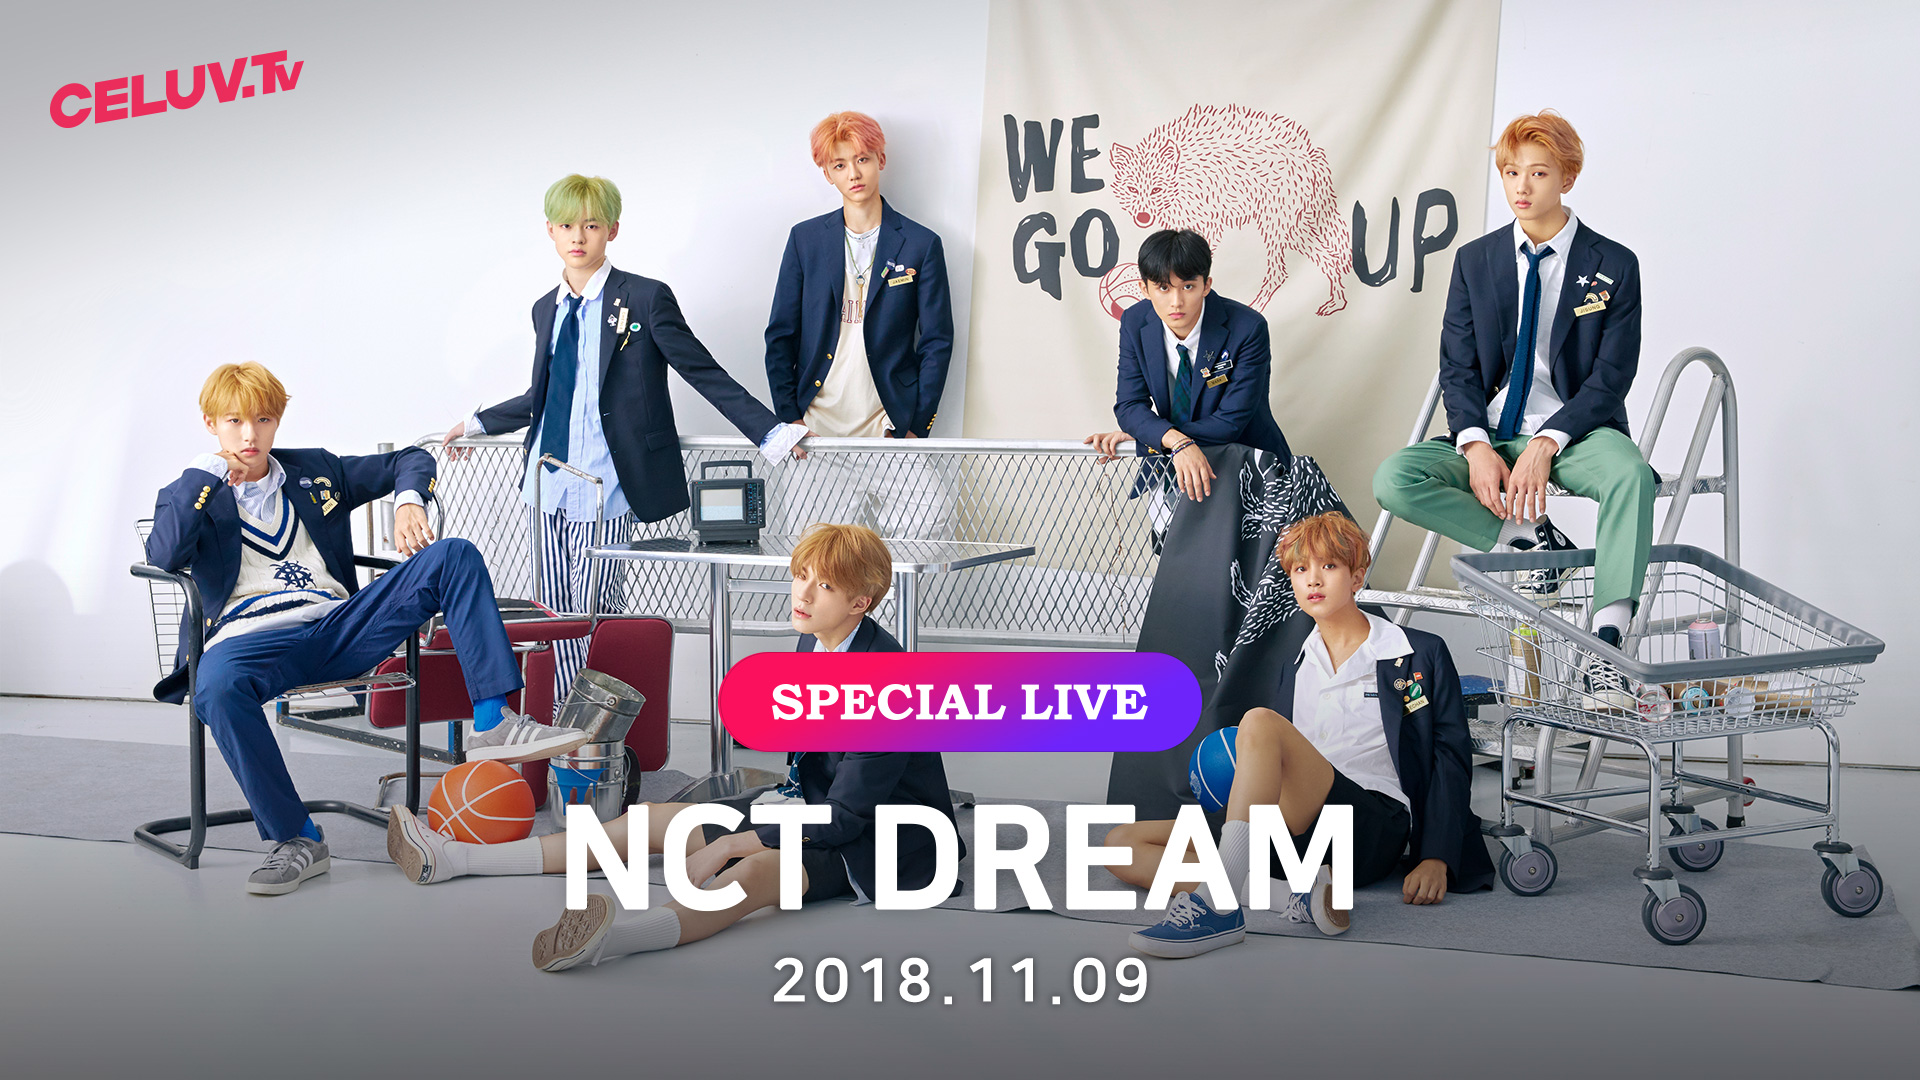 [I'm Celuv] NCT DREAM, 다 함께 Go Up 할 시간!